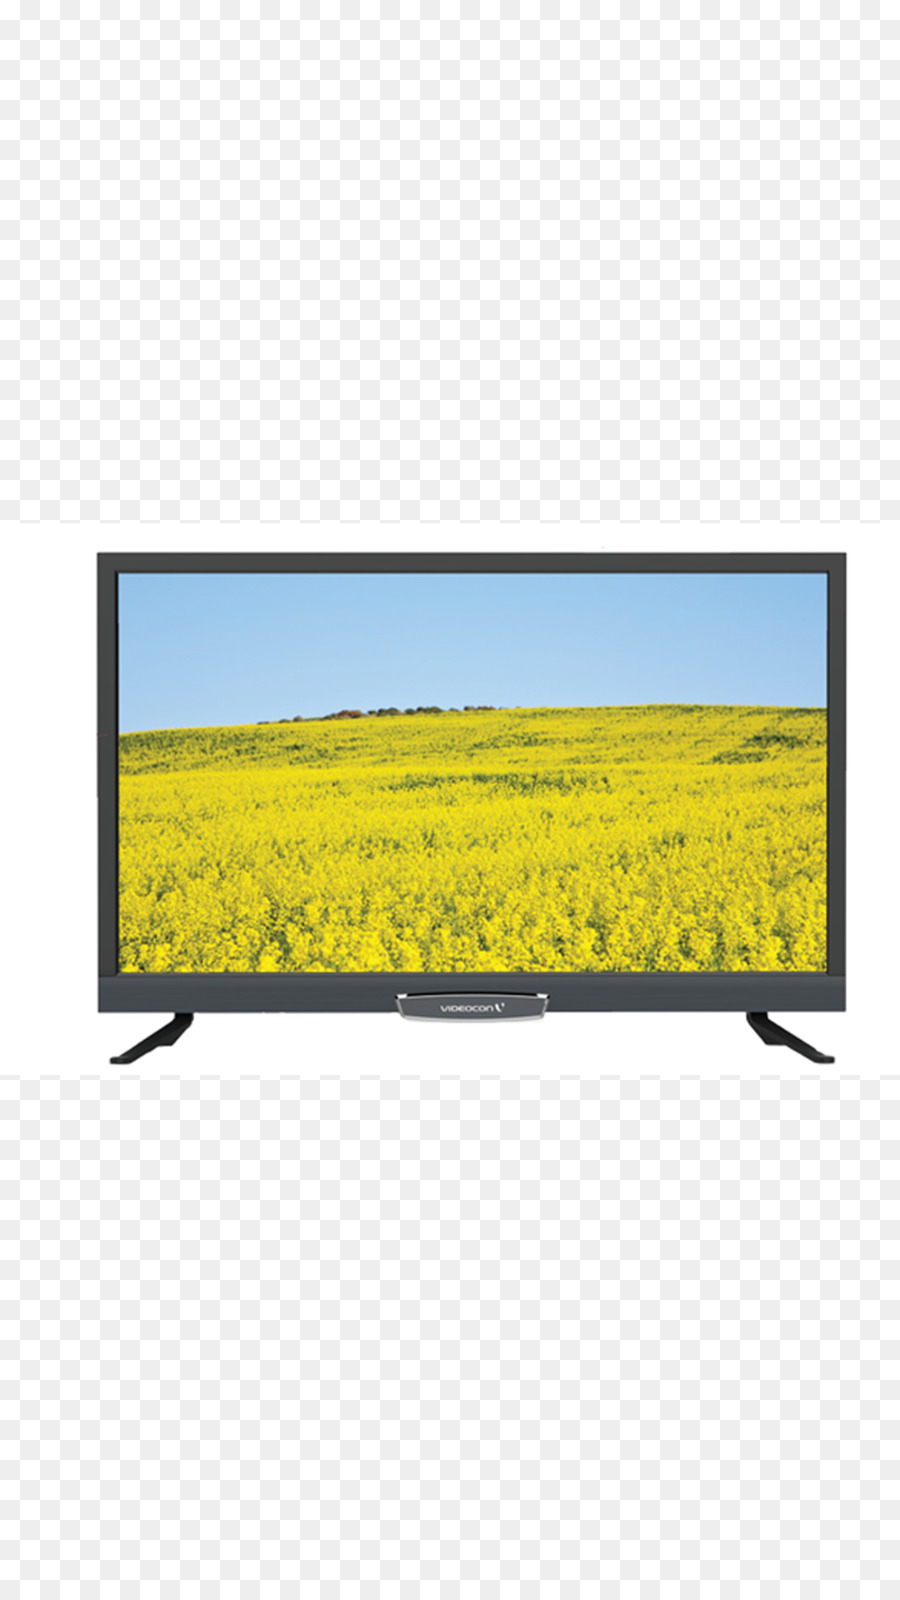 Television Television png download - 1080*1920 - Free Transparent